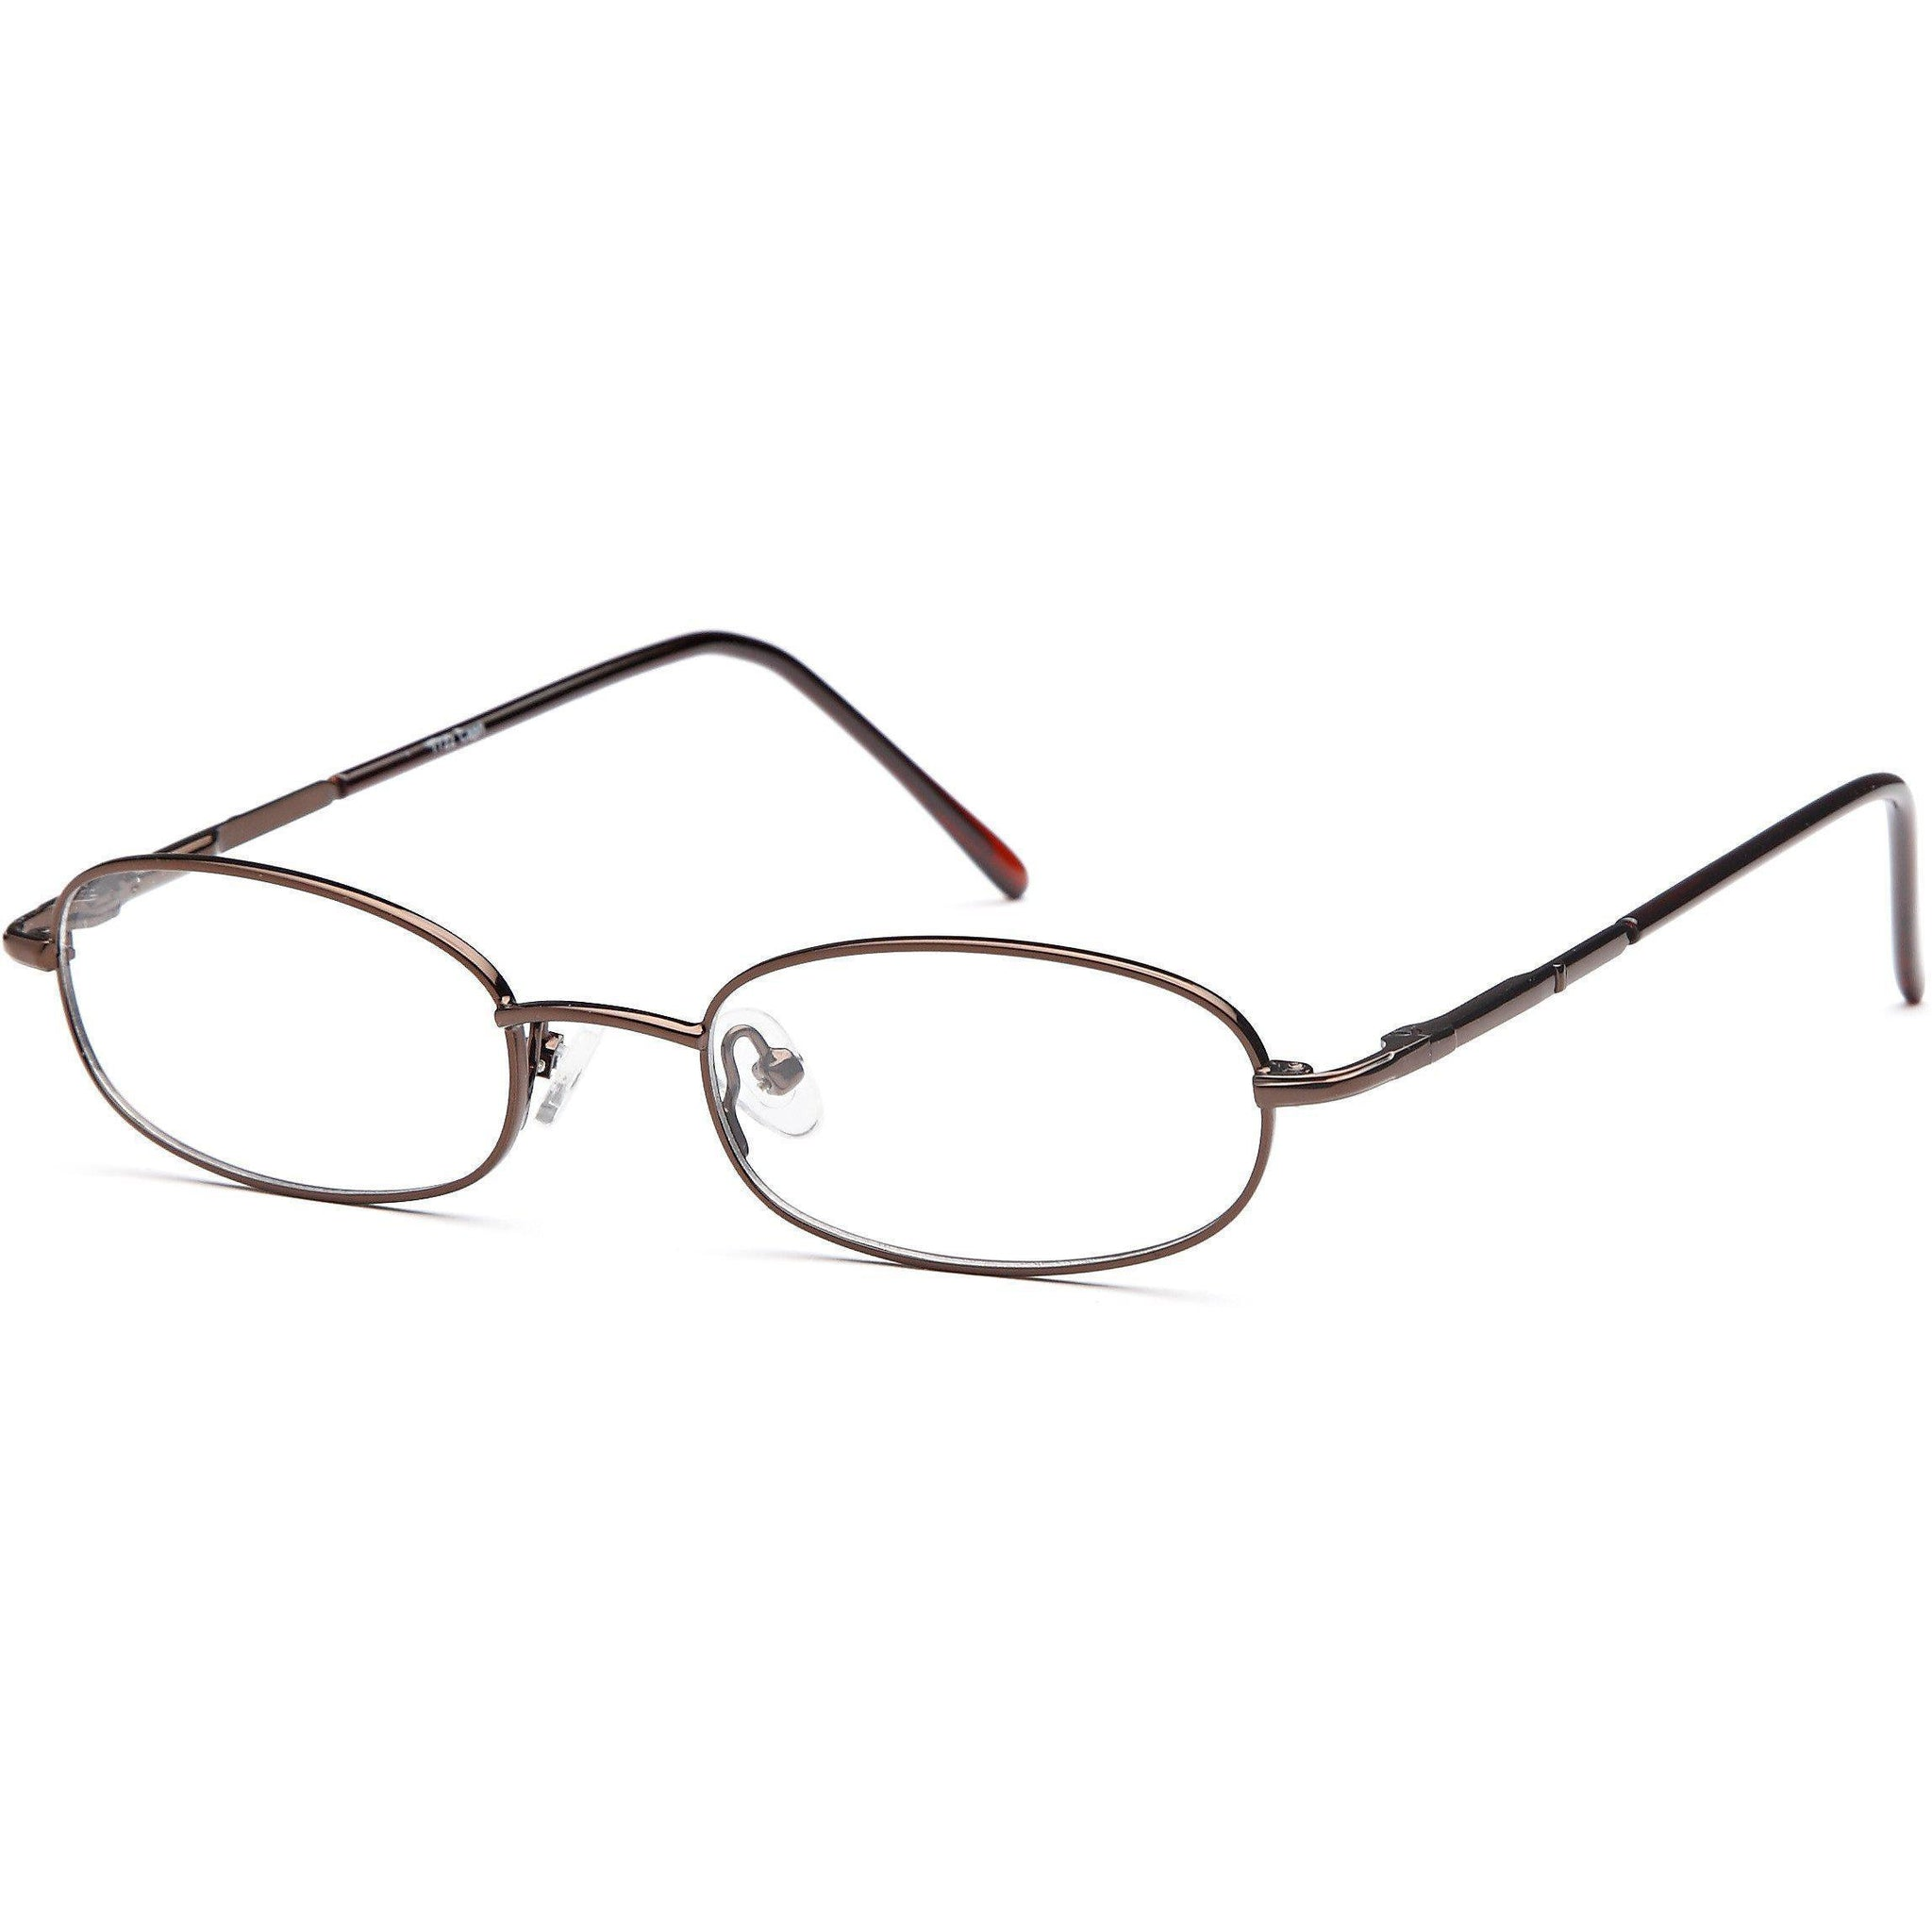 Appletree Prescription Glasses 7722 Eyeglasses Frame